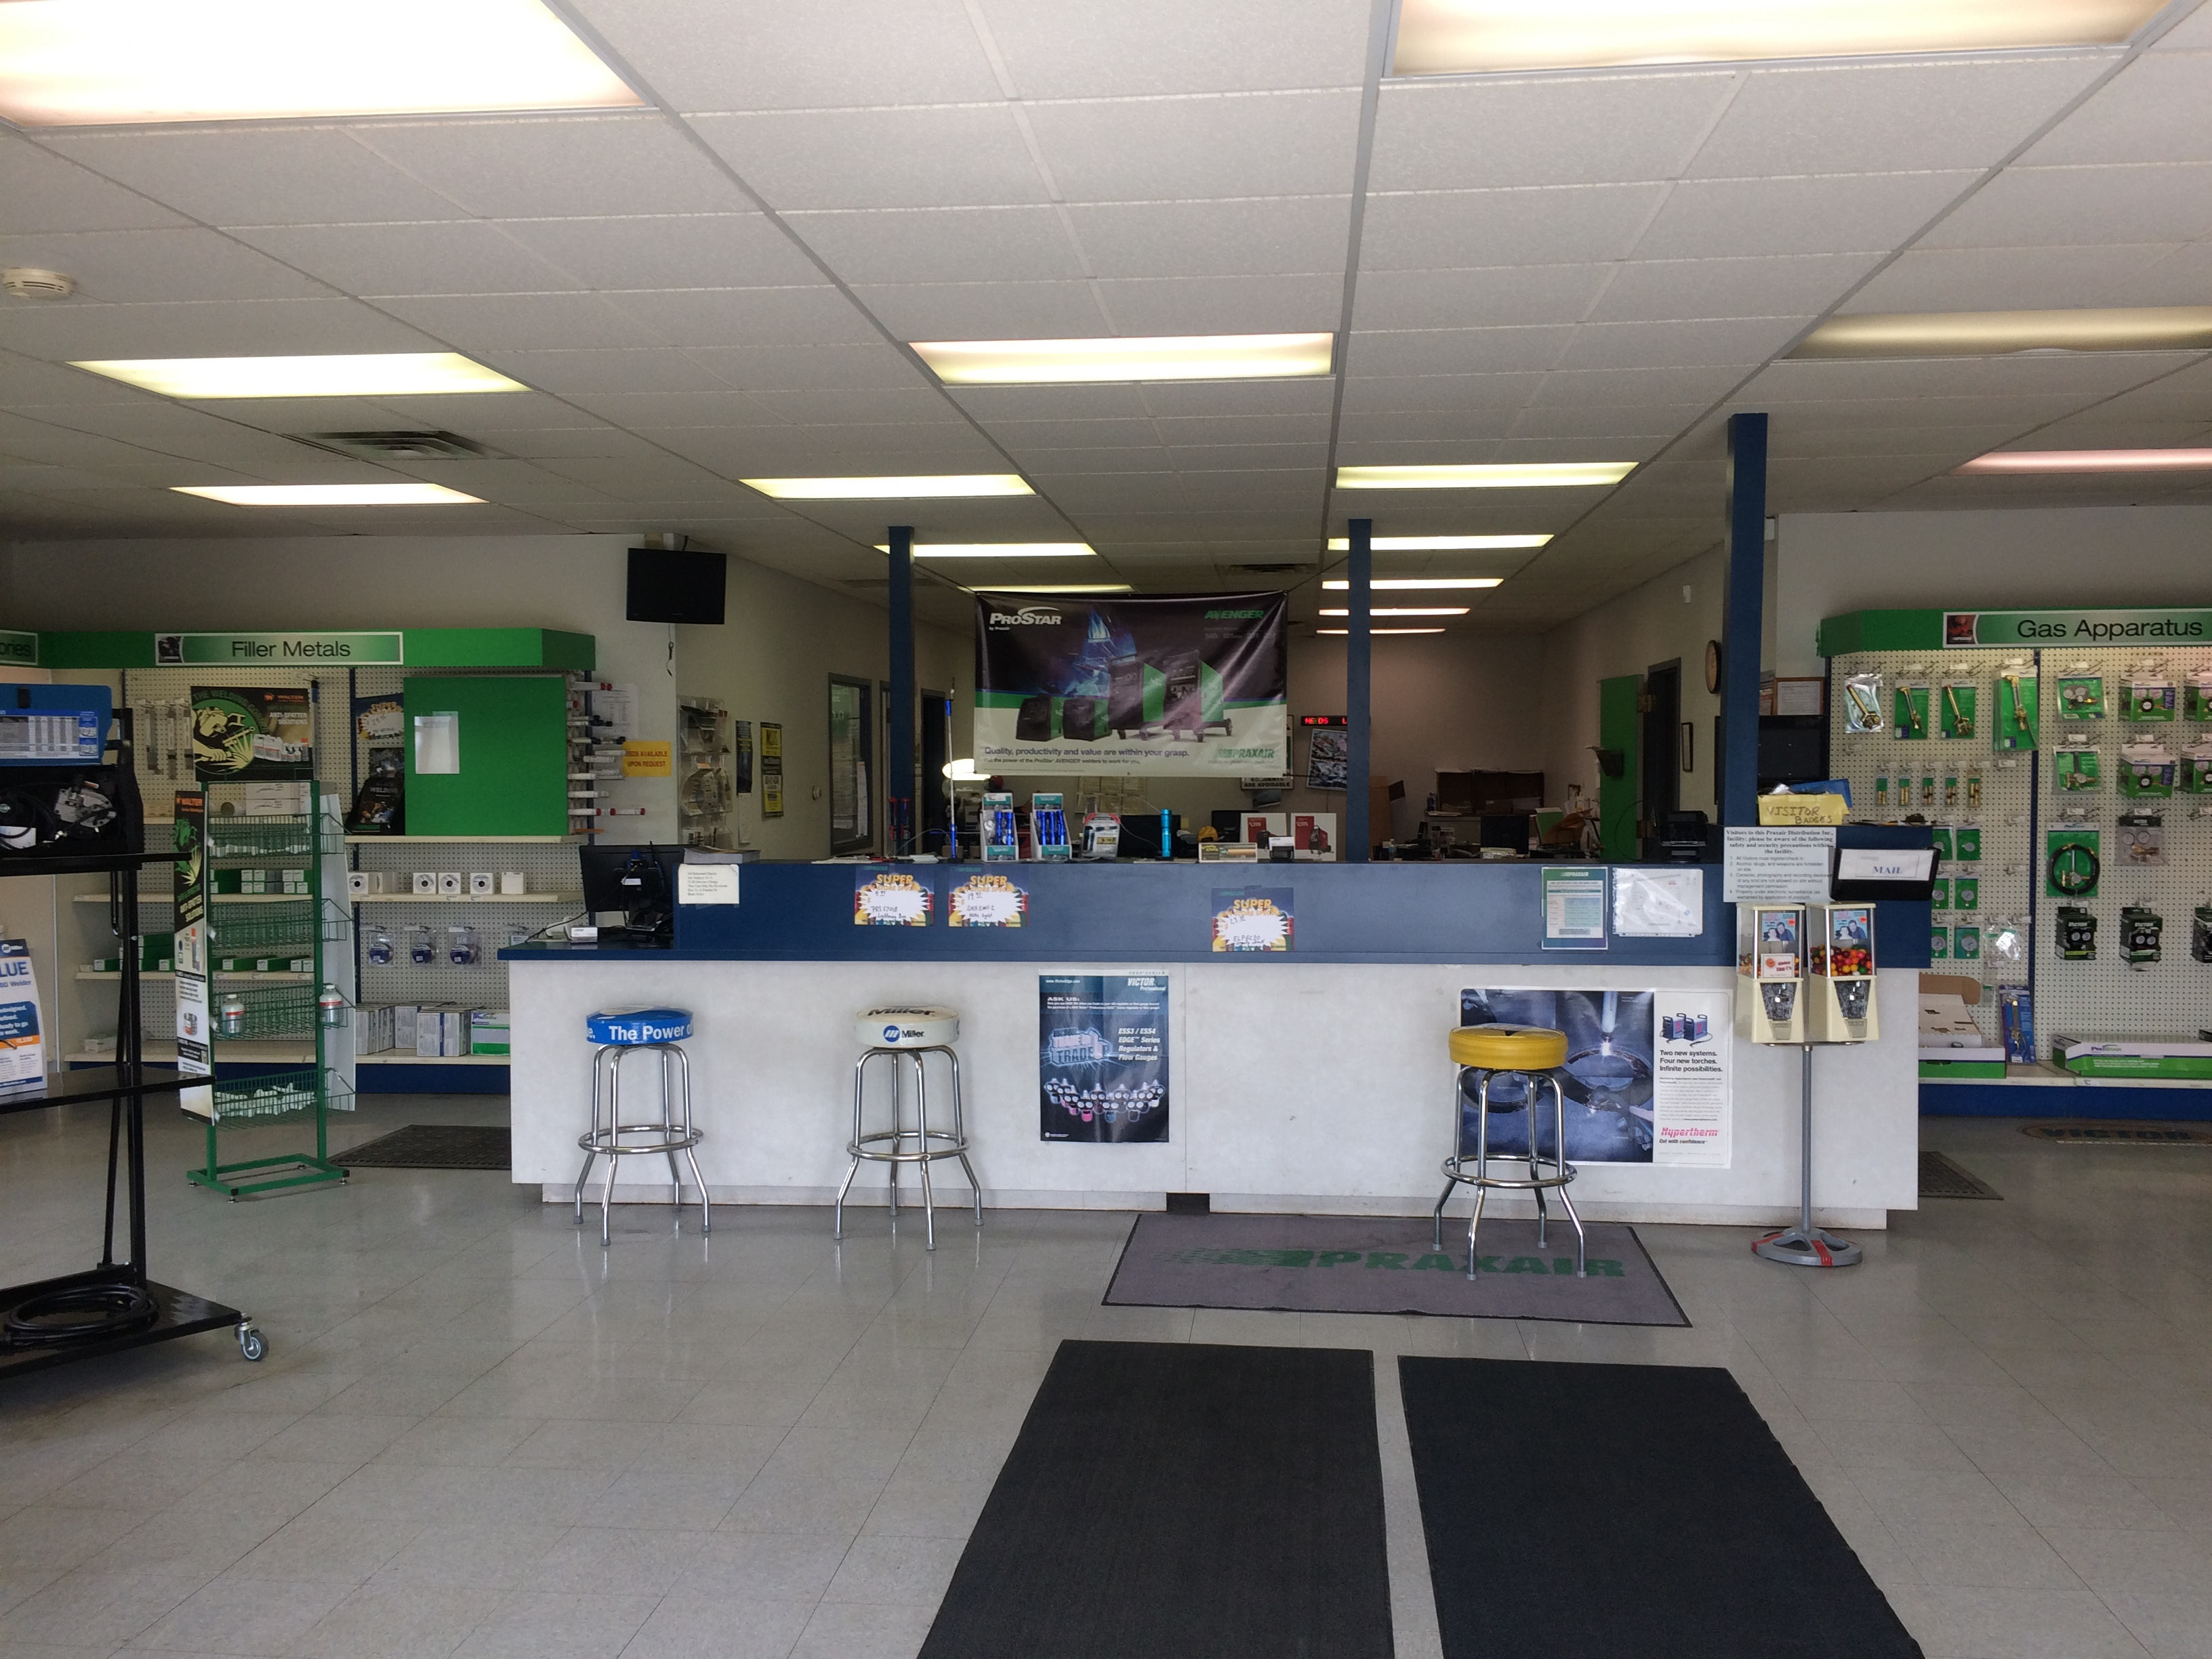 Praxair Welding Gas and Supply Center image 1